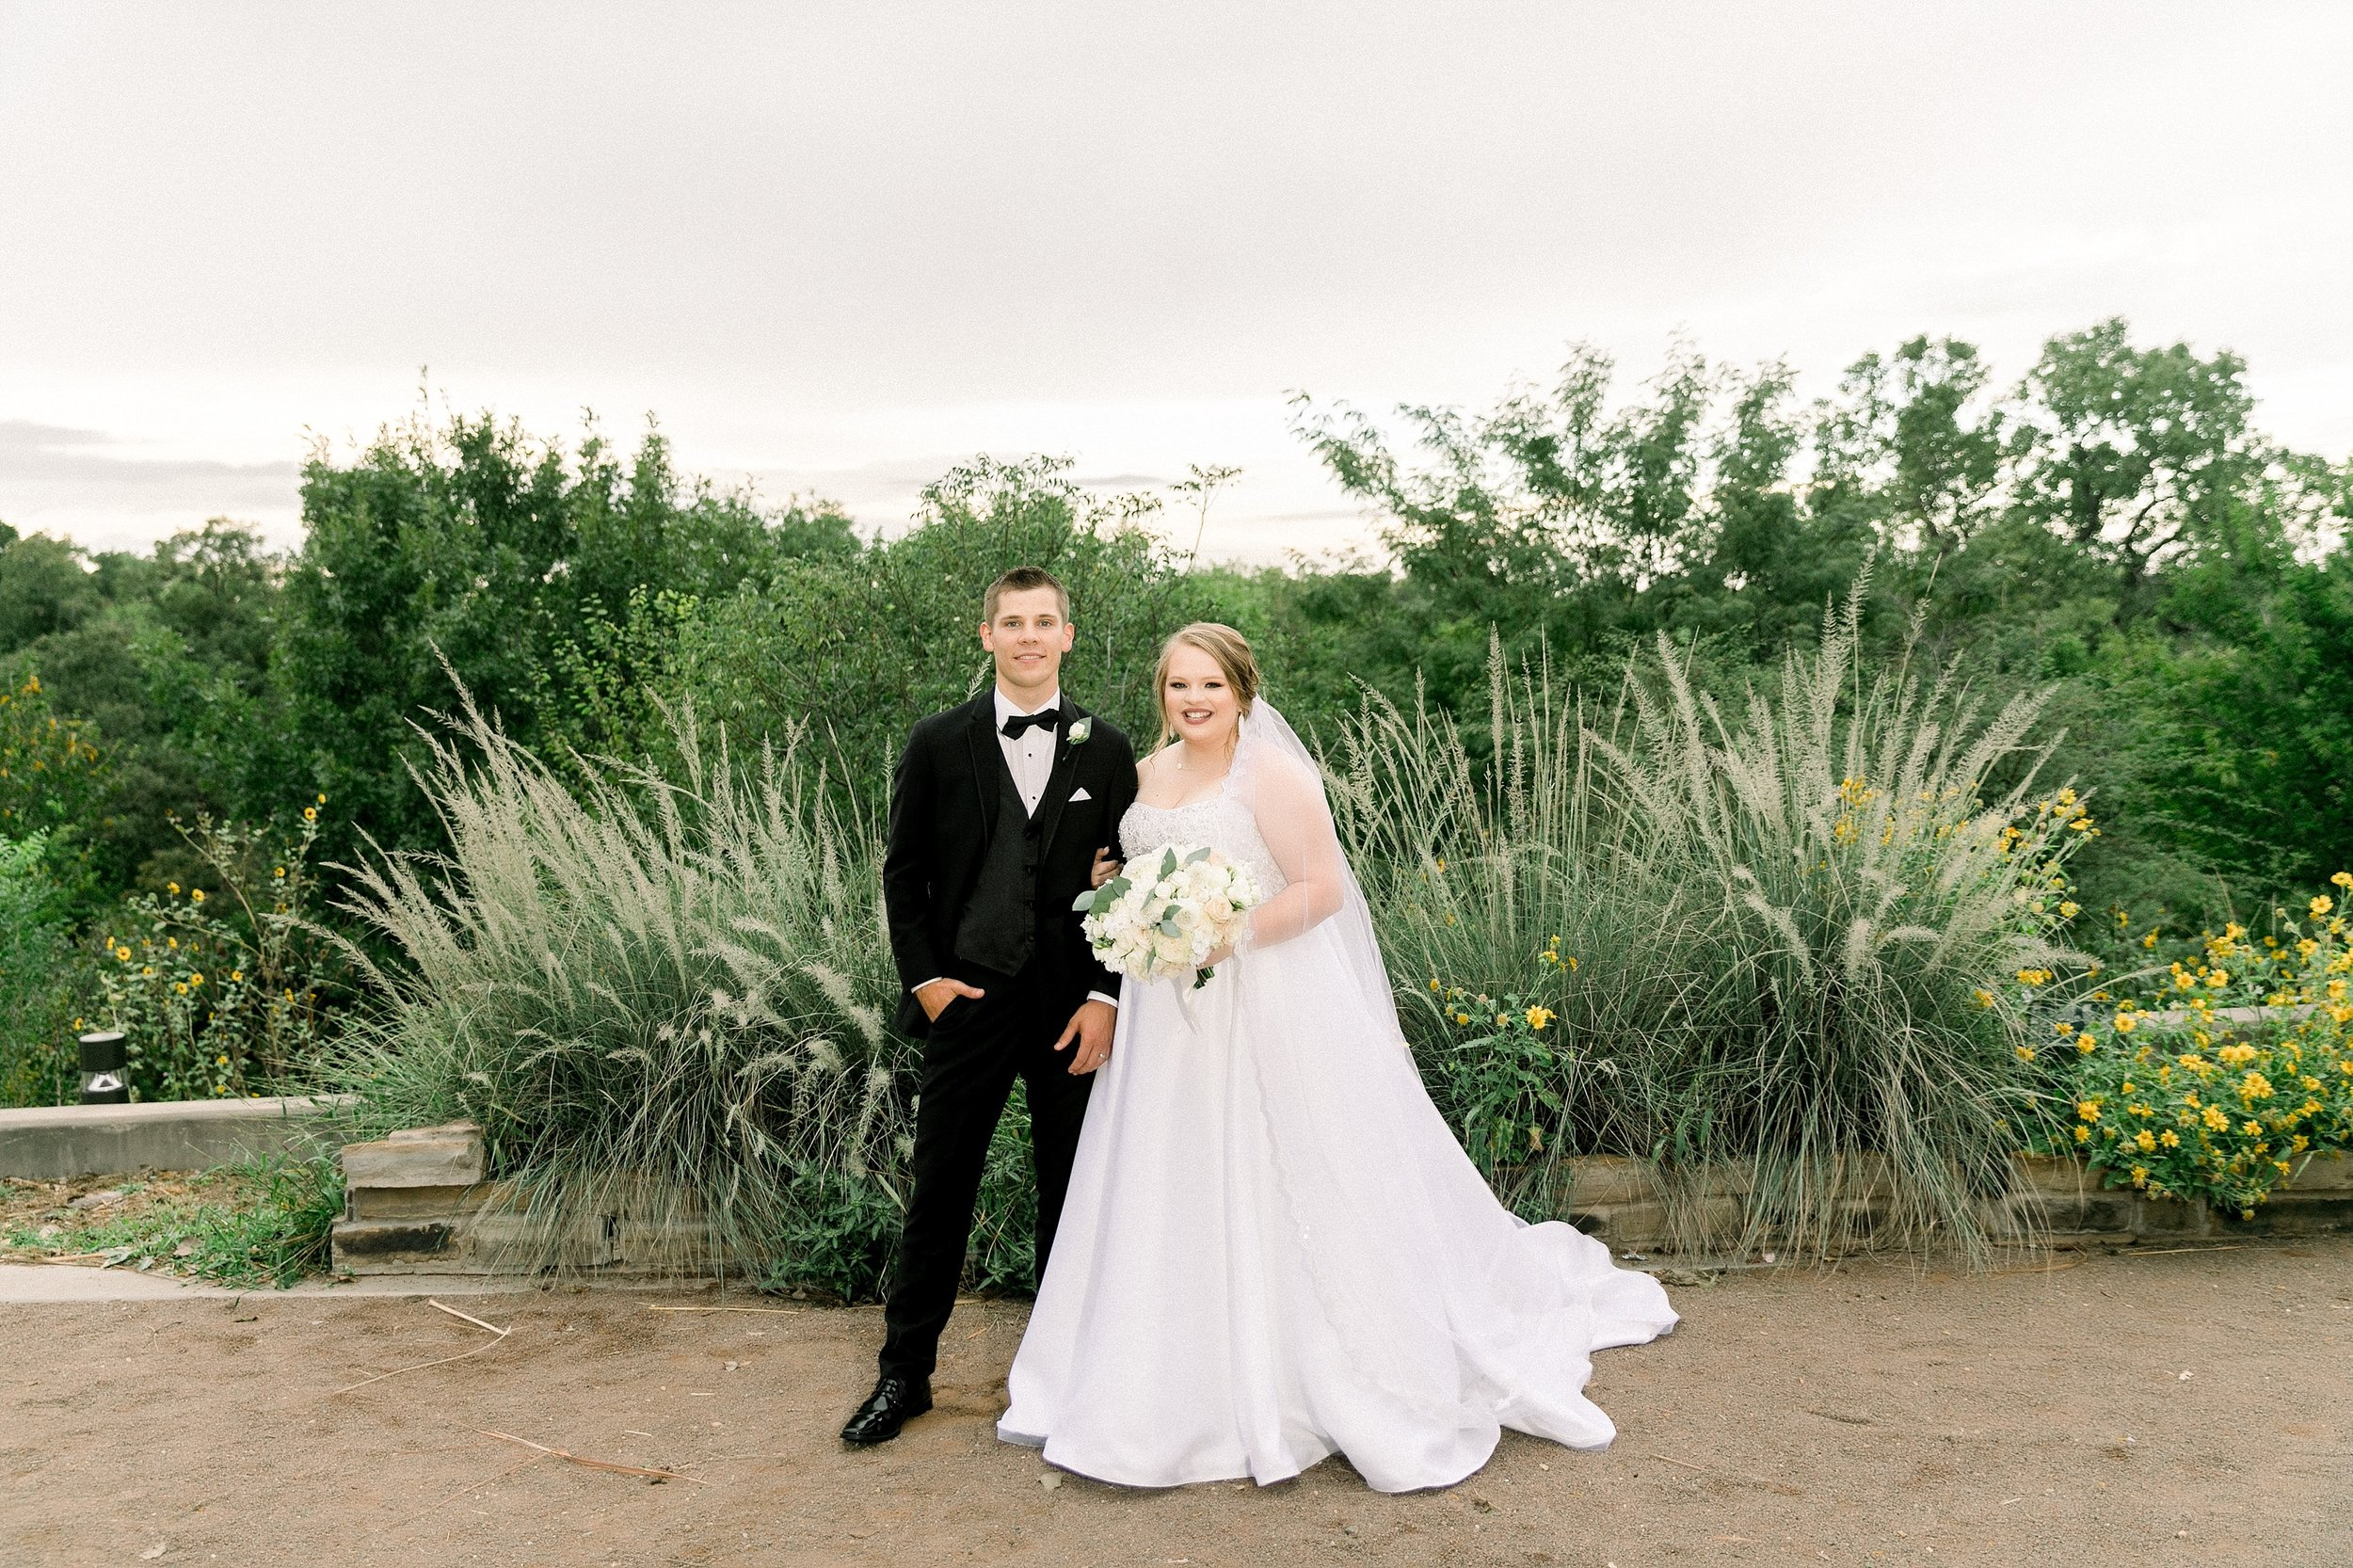 Ryanne-and-william-wedding-at-river-bend-nature-center-wichita-falls-texas-two-clever-chicks-0099.jpg